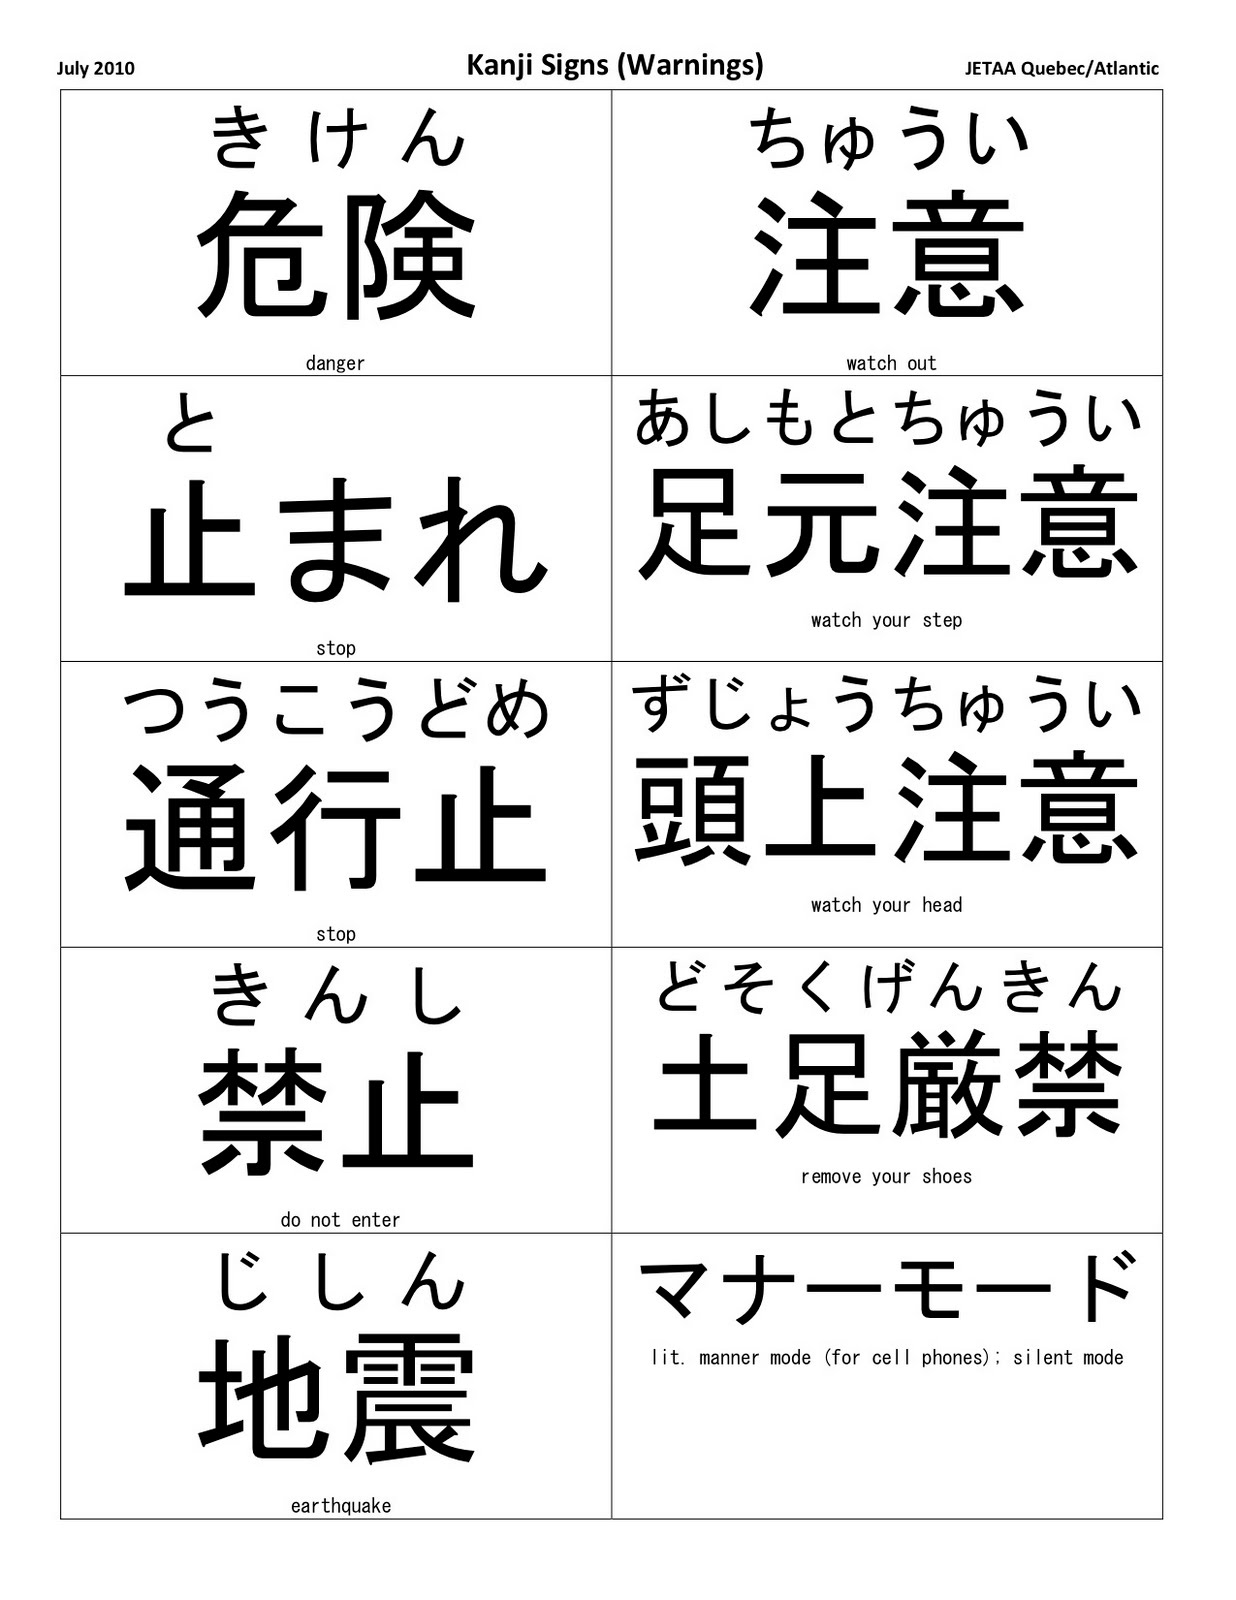 Japanese Kanji Symbols And Meanings List